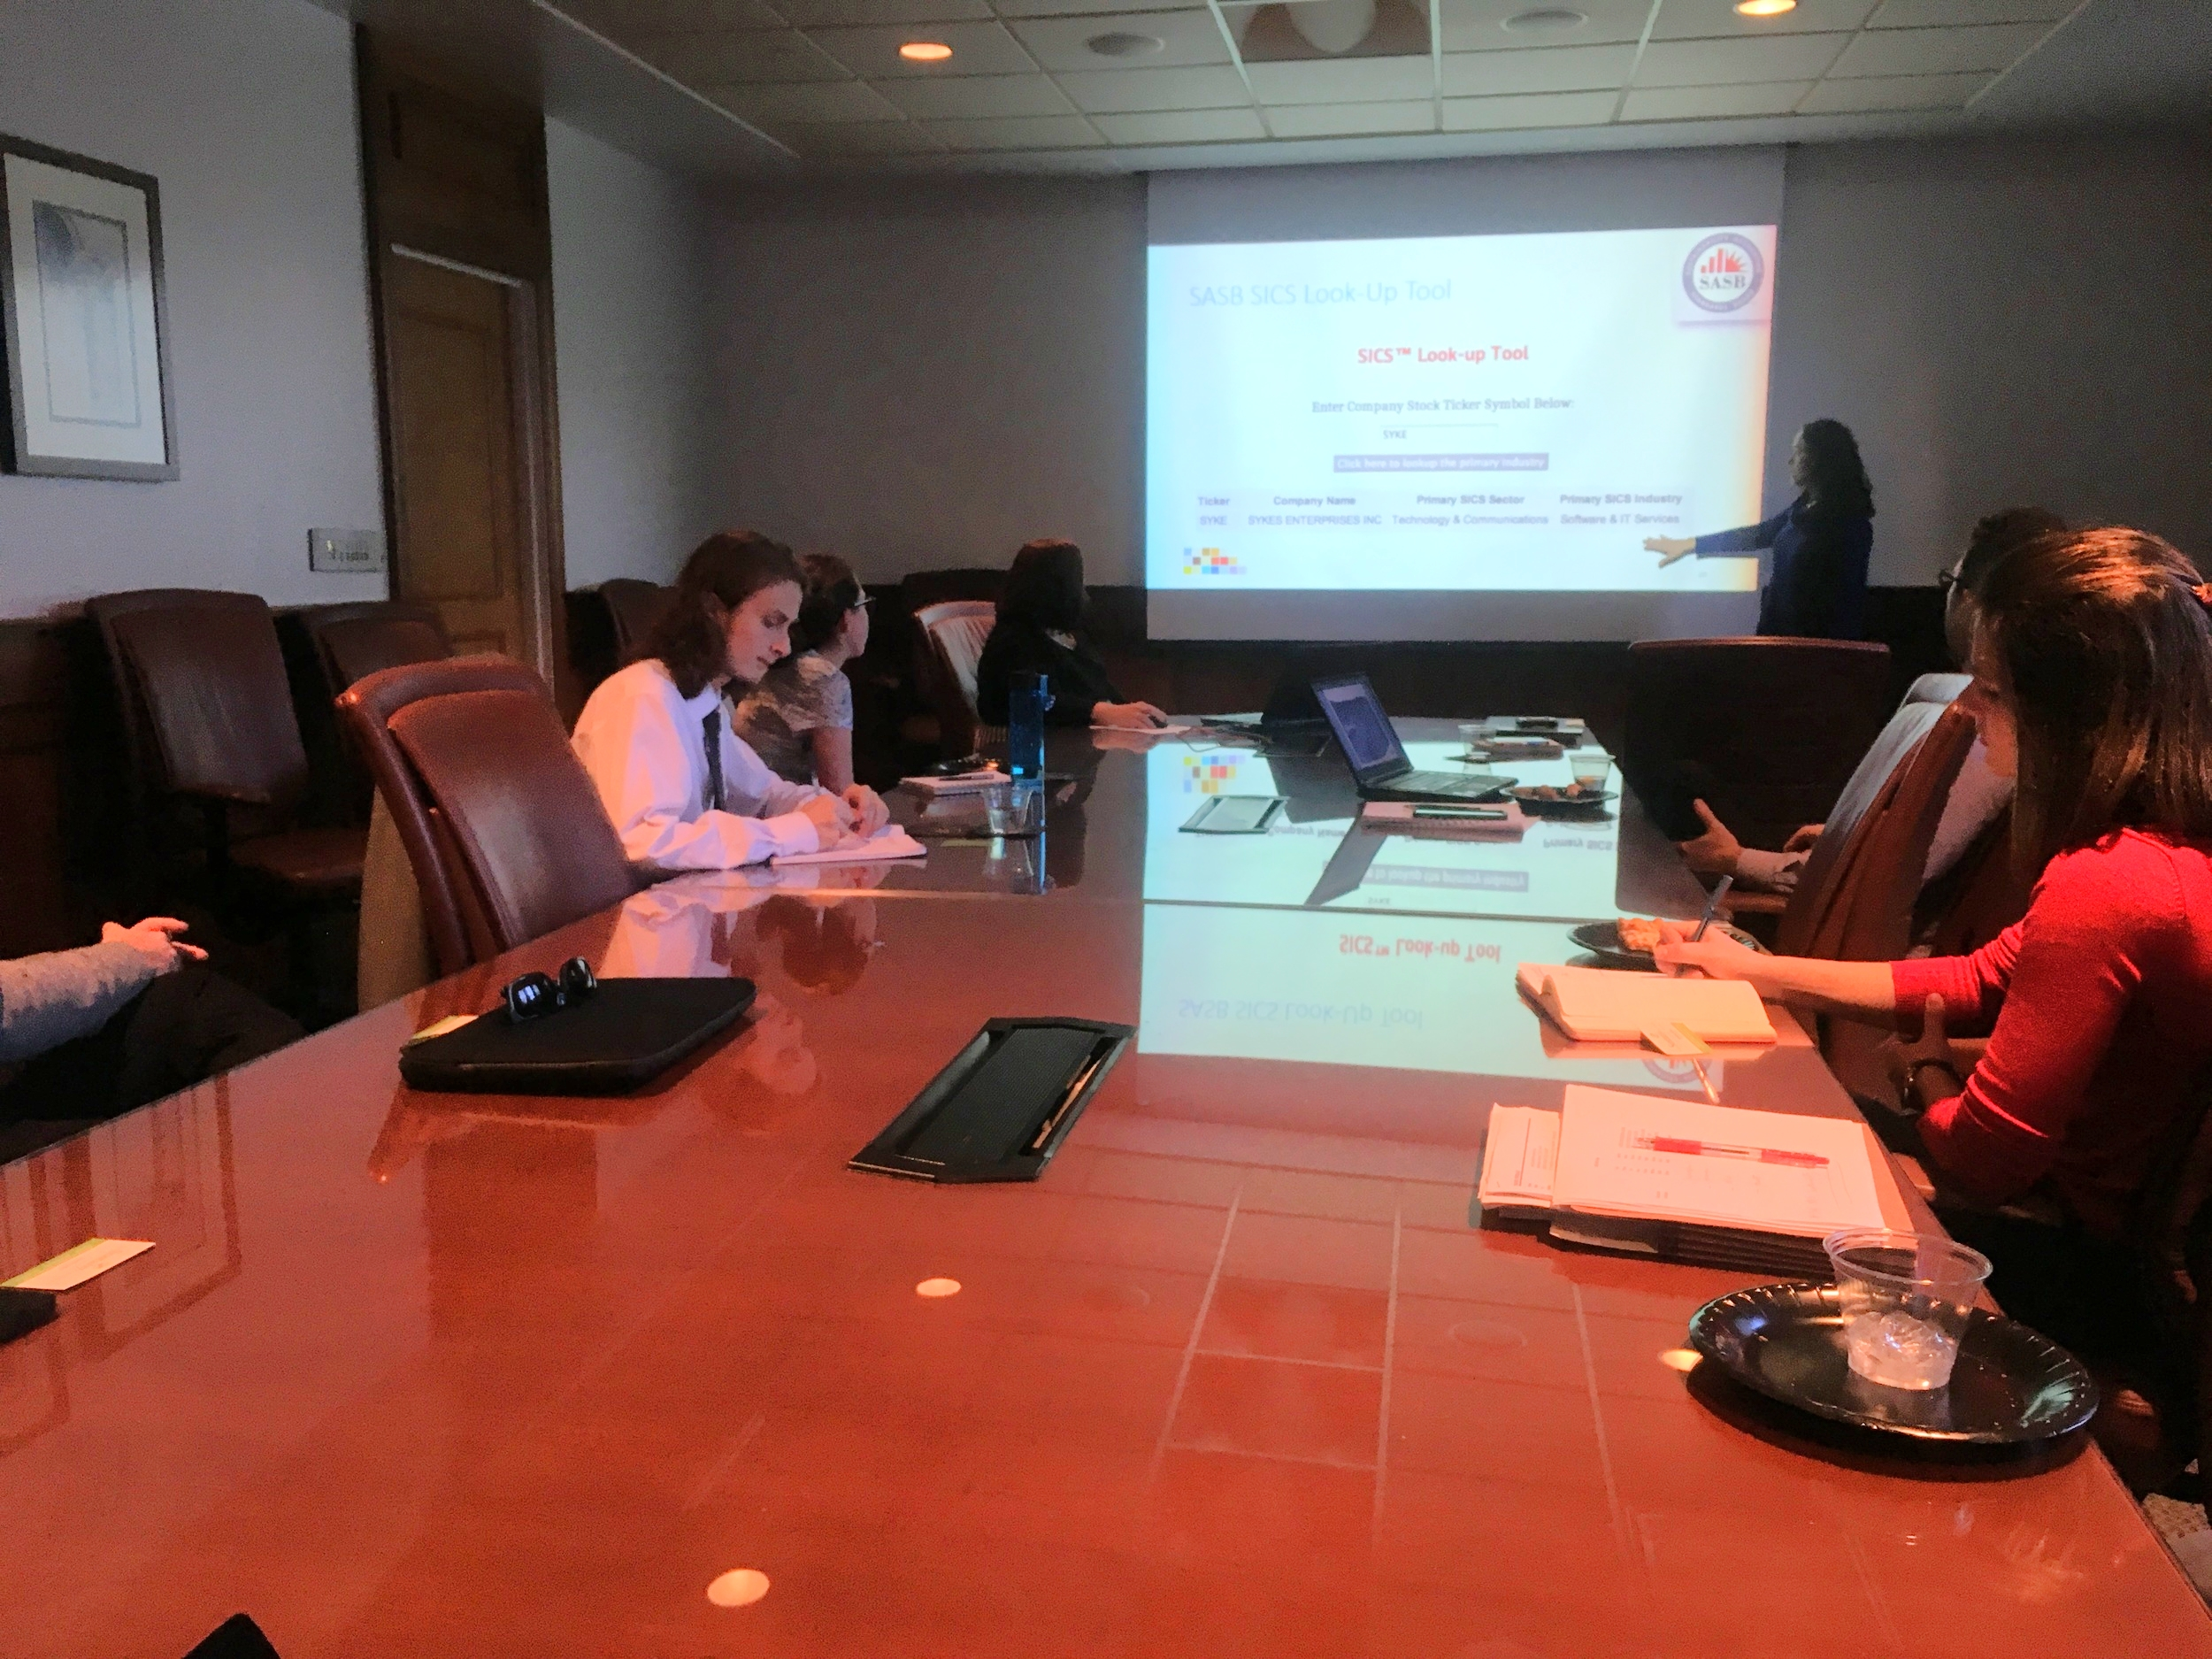 Training students at the University of Tampa, Sykes College of Business